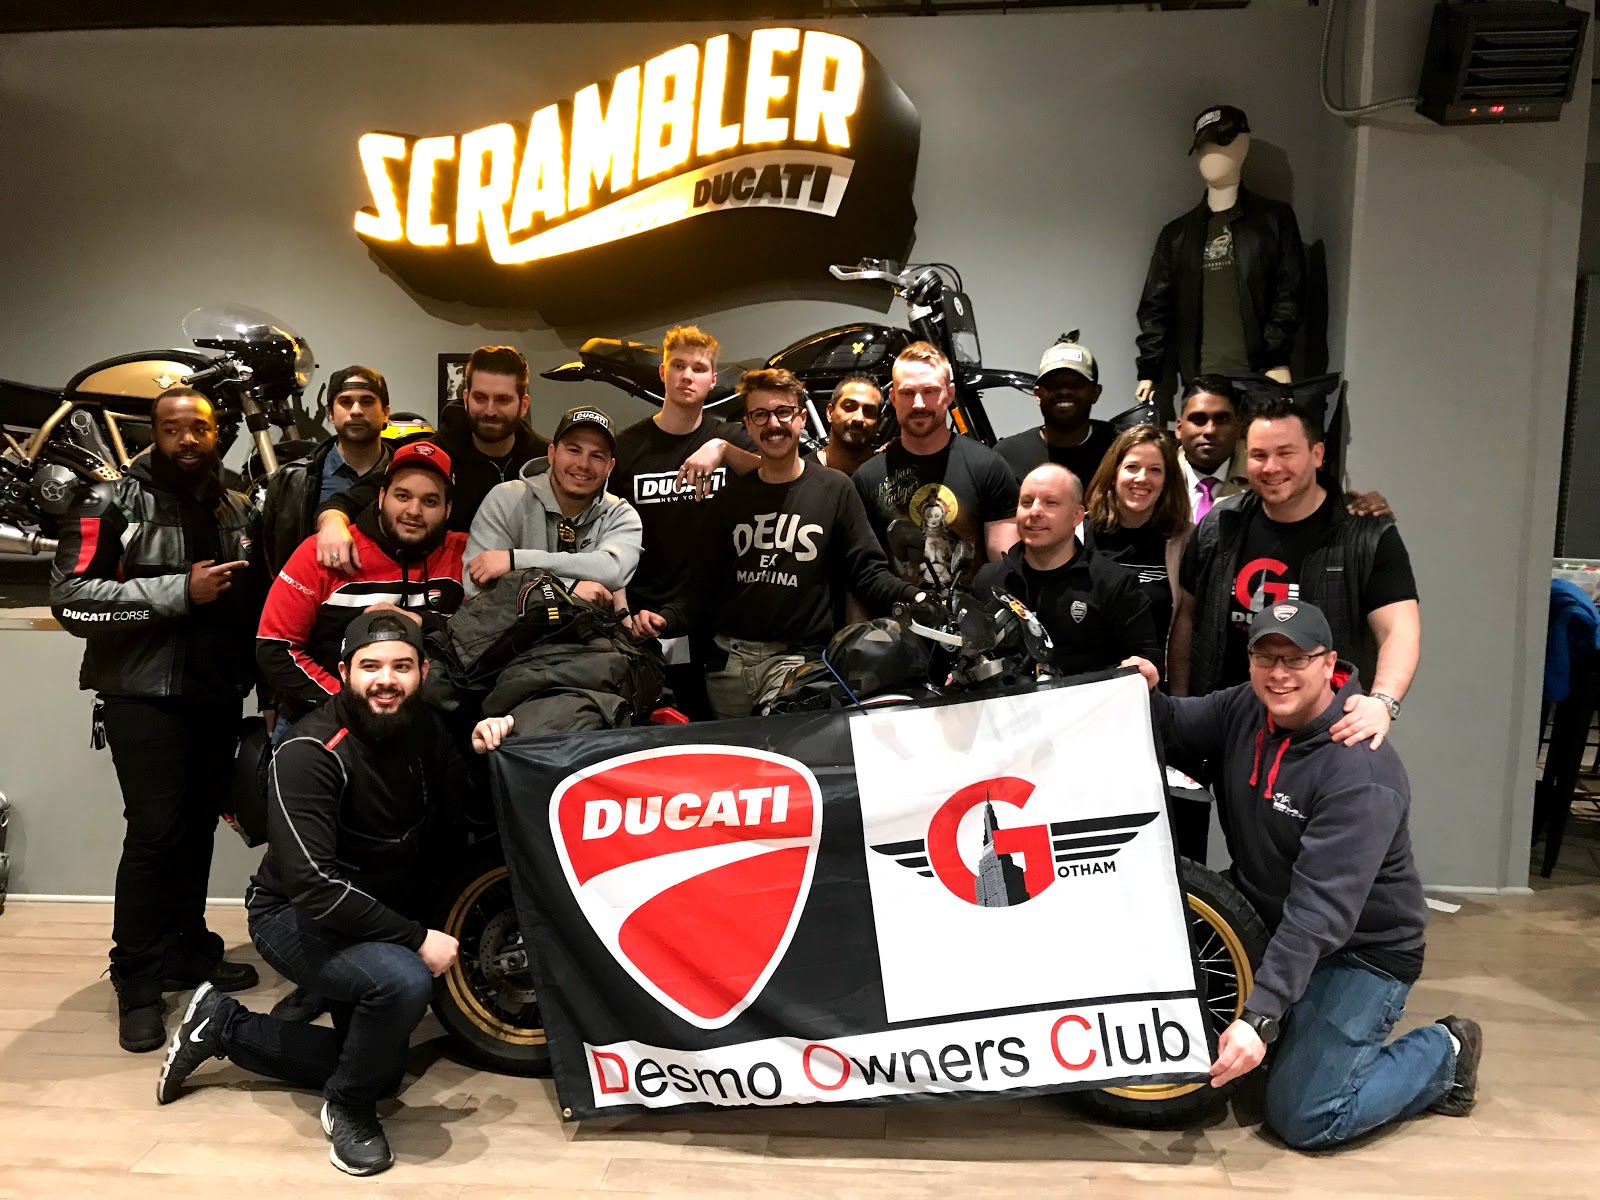 Gotham Ducati Desmo Owners Club, Tigh Loughhead and Henry Crew of 35000miles Guiness Book World Record Holder